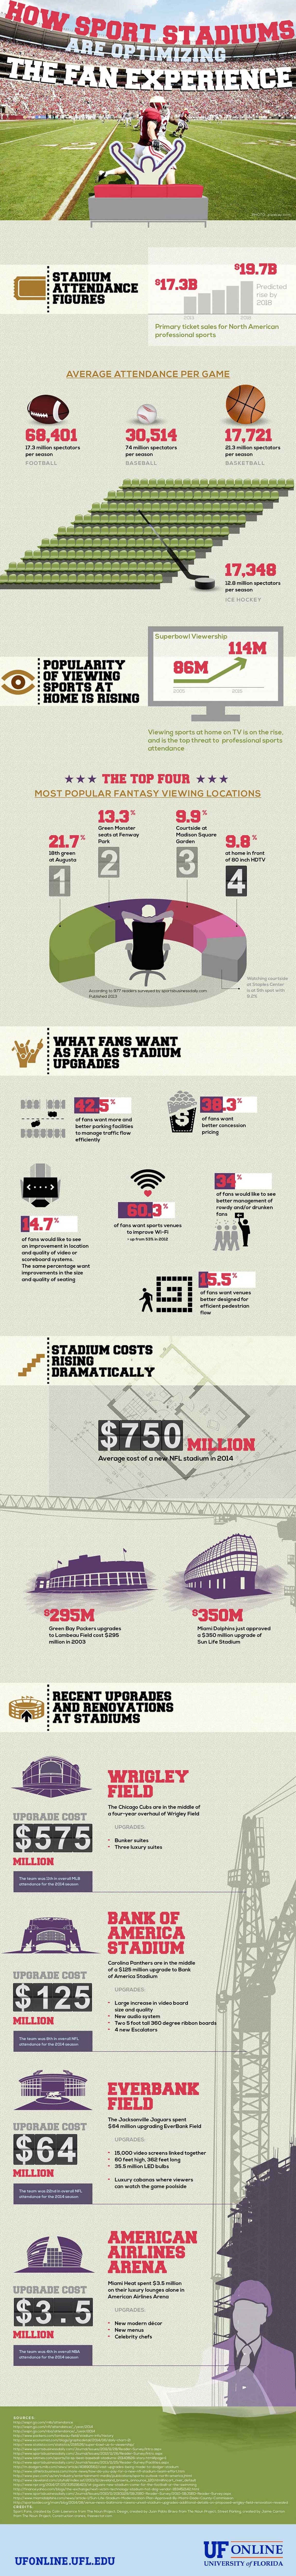 How Sport Stadiums are Optimizing the Fan Experience Infographic